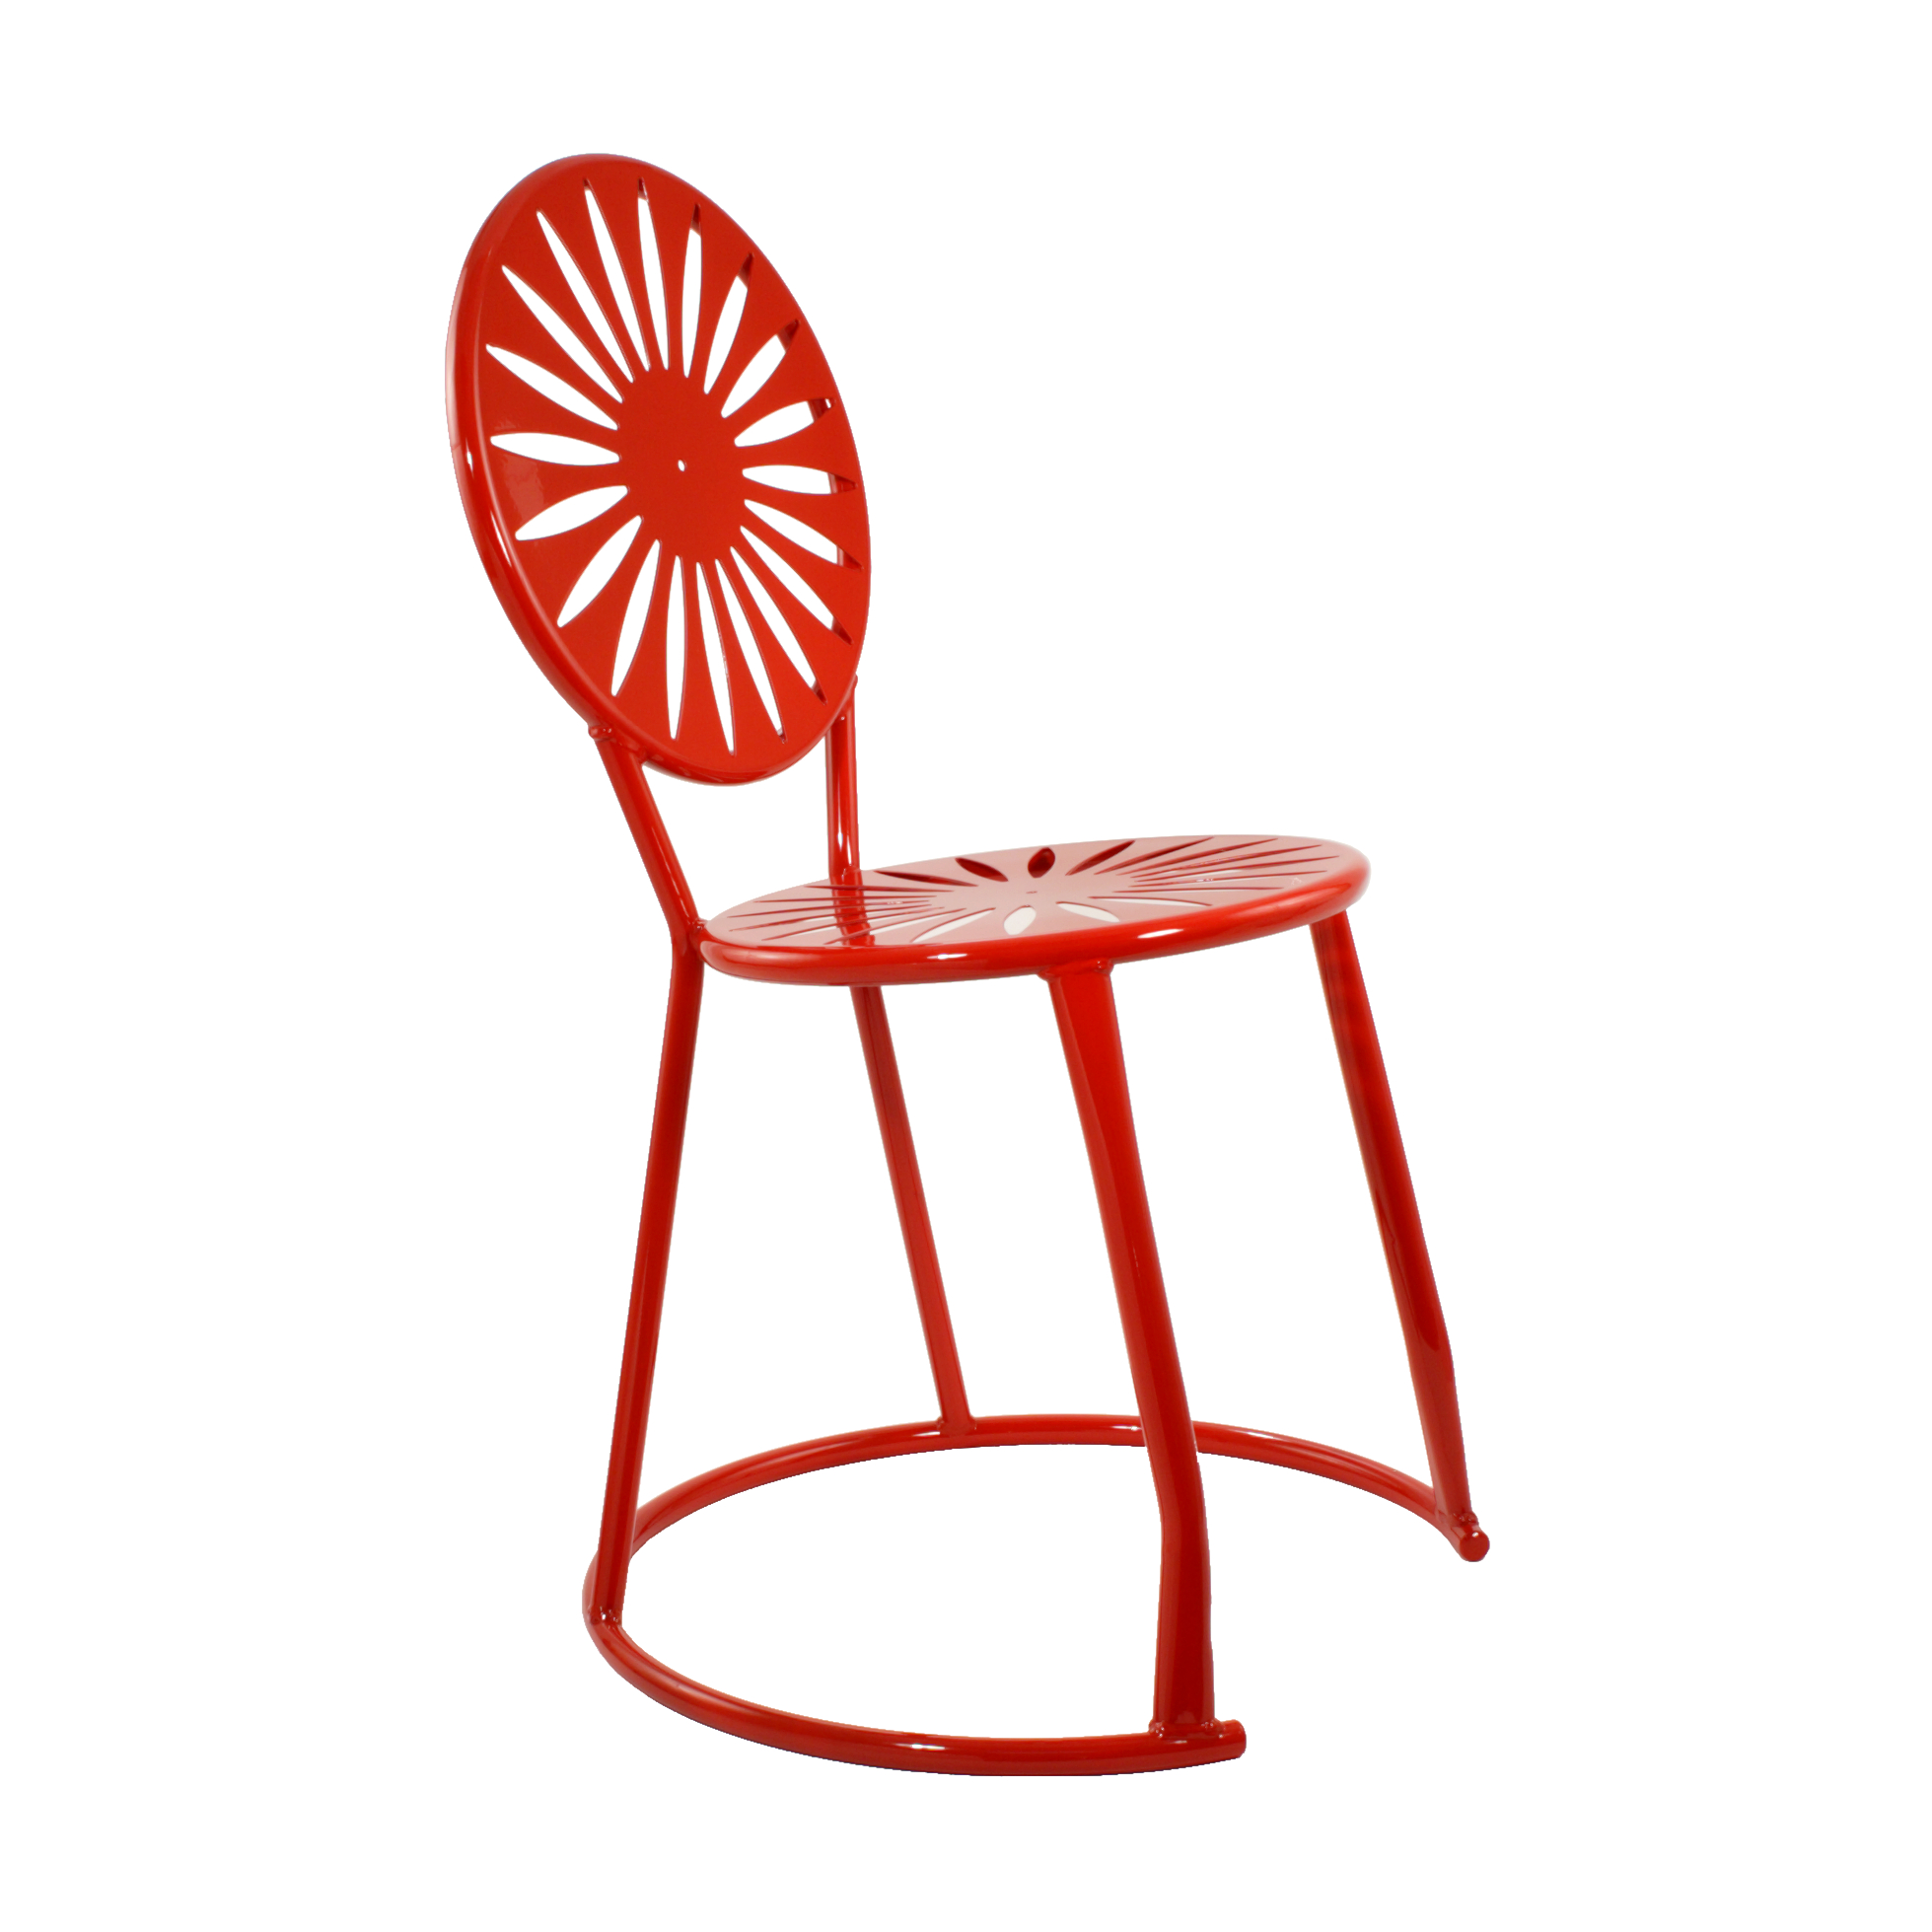 Terrace chair armless wisconsin union terrace store for Terrace chairs